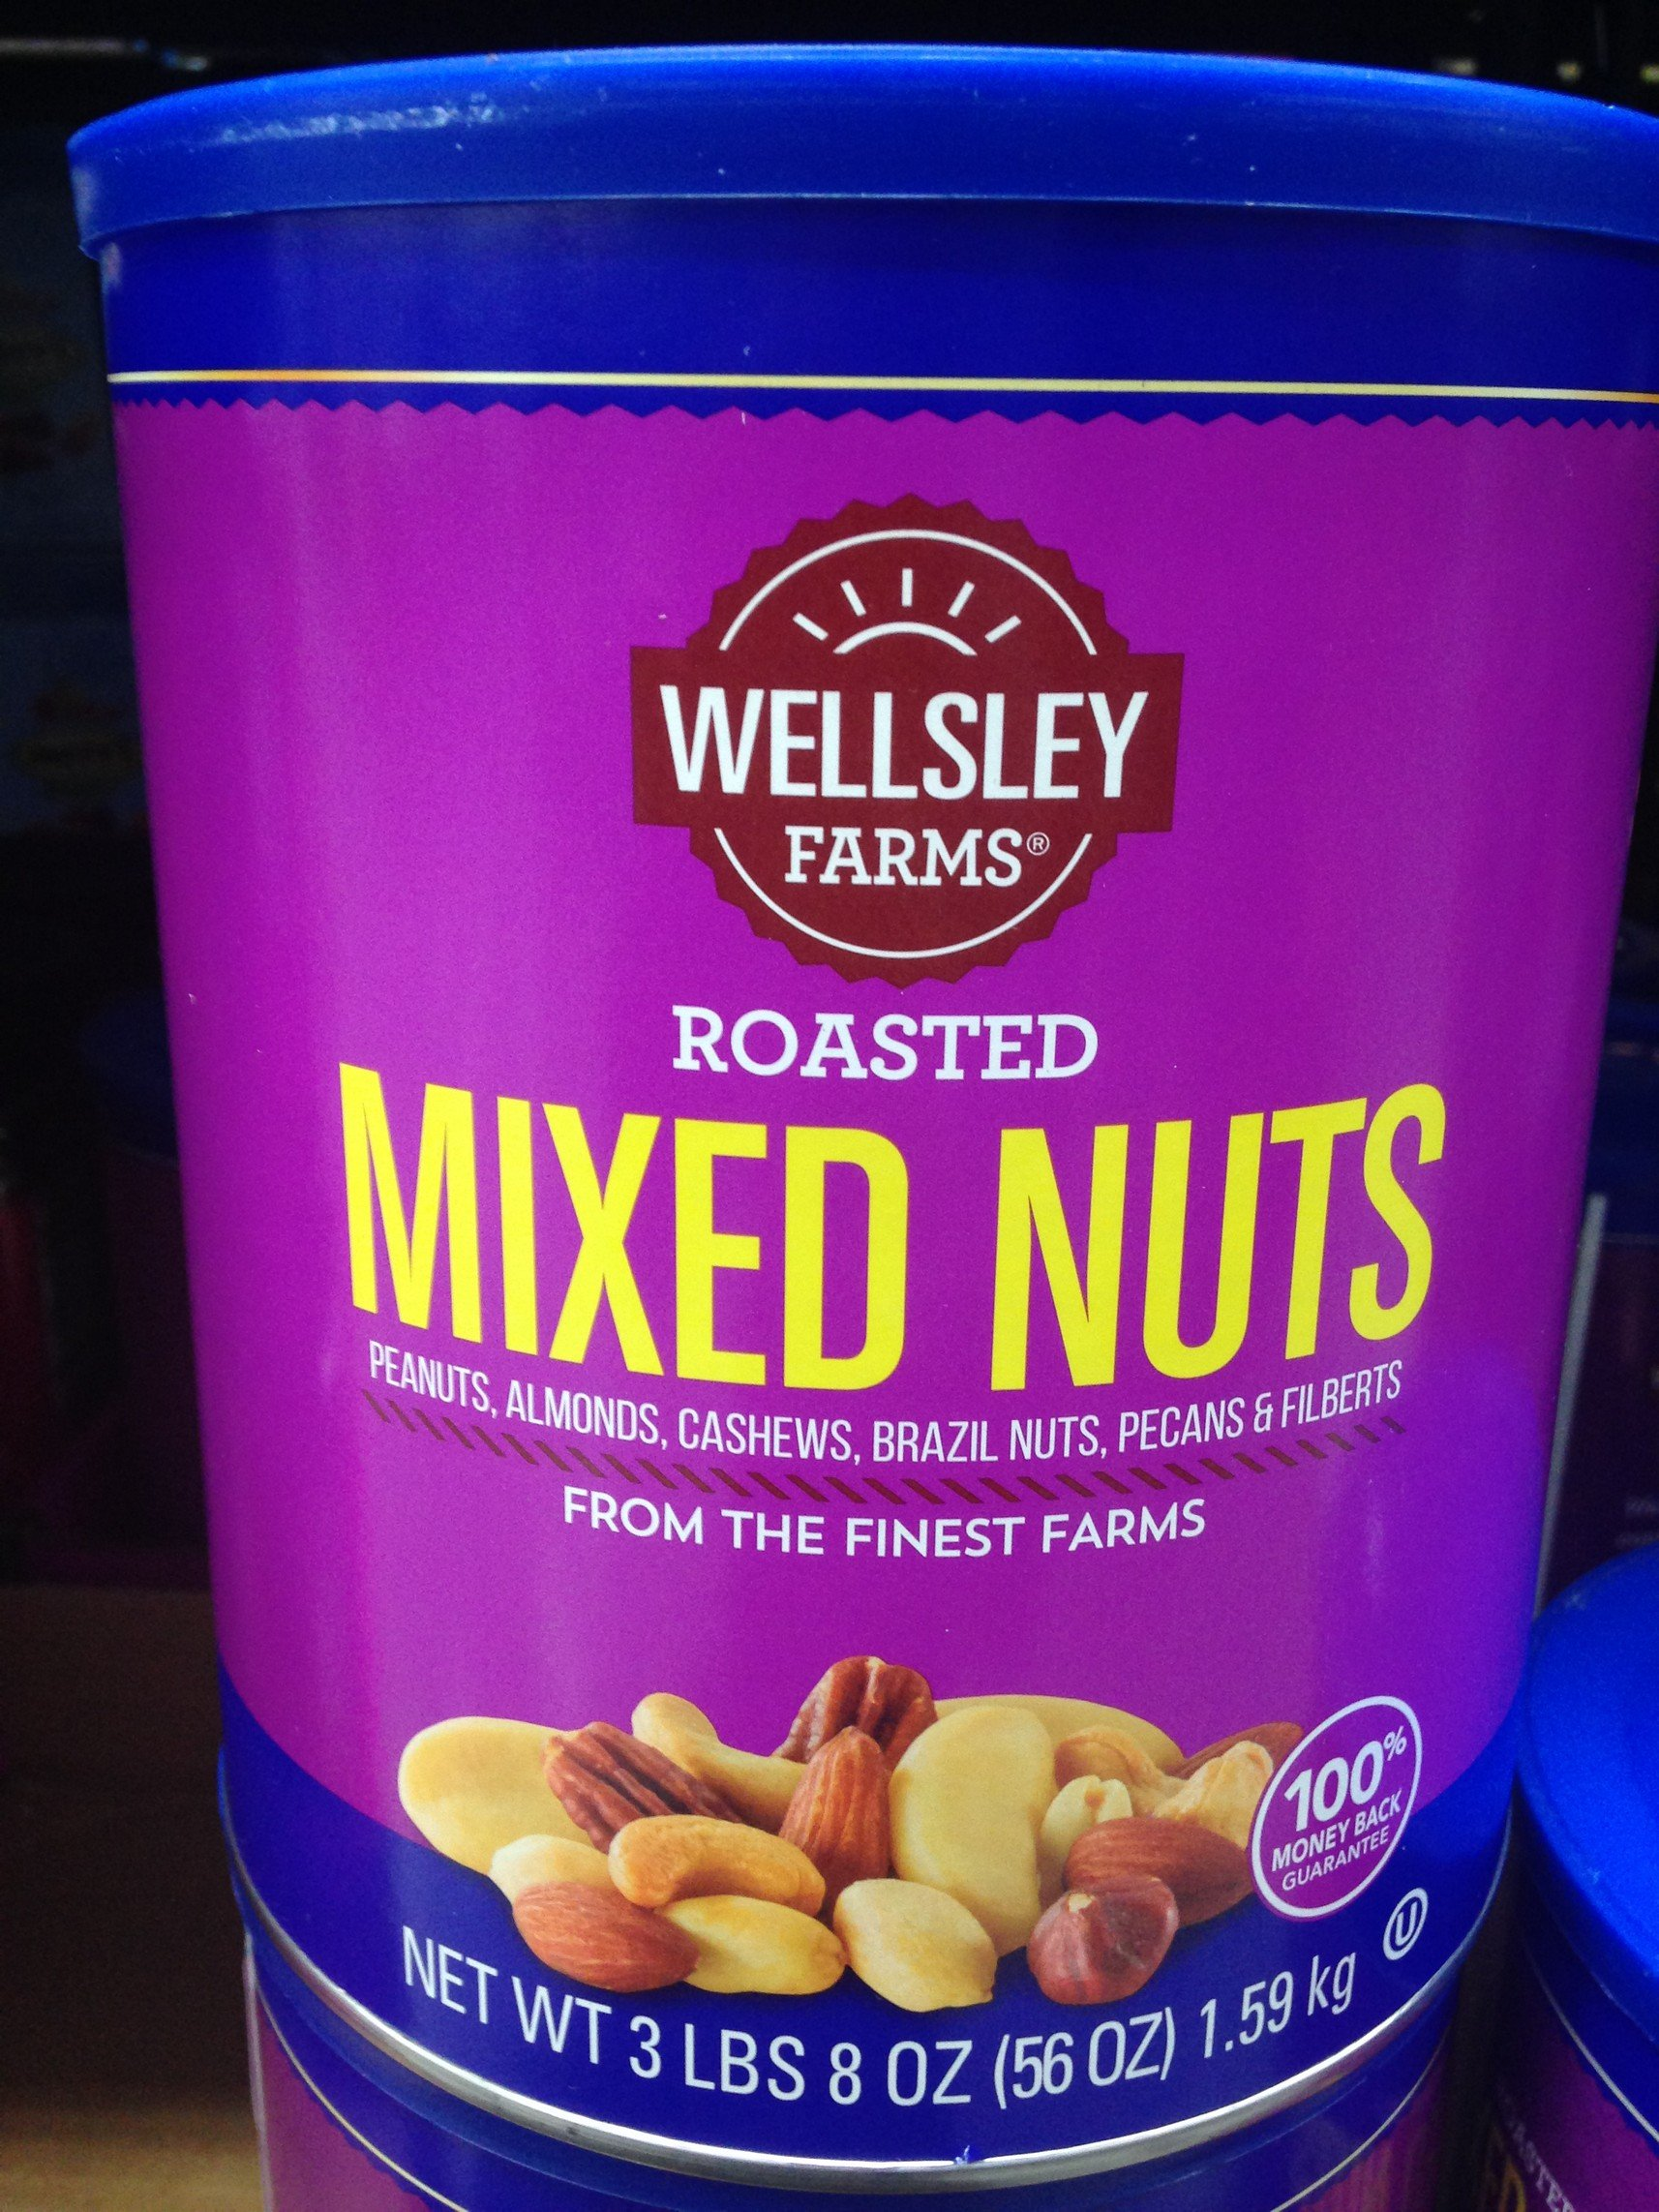 Wellsley Farms mixed nuts 56 oz (pack of 6)